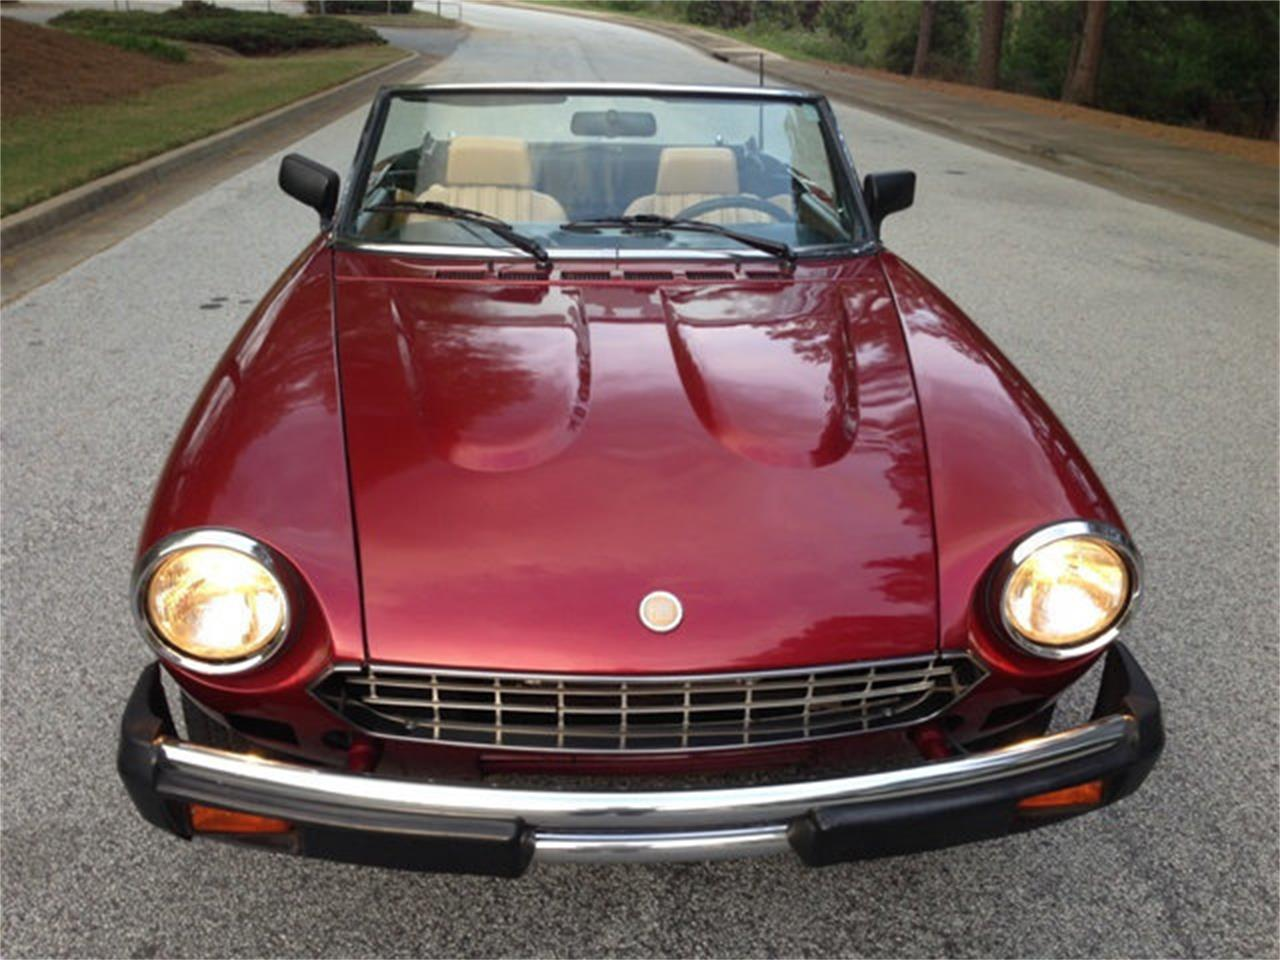 1982 Fiat 124 for sale in Duluth, GA – photo 15